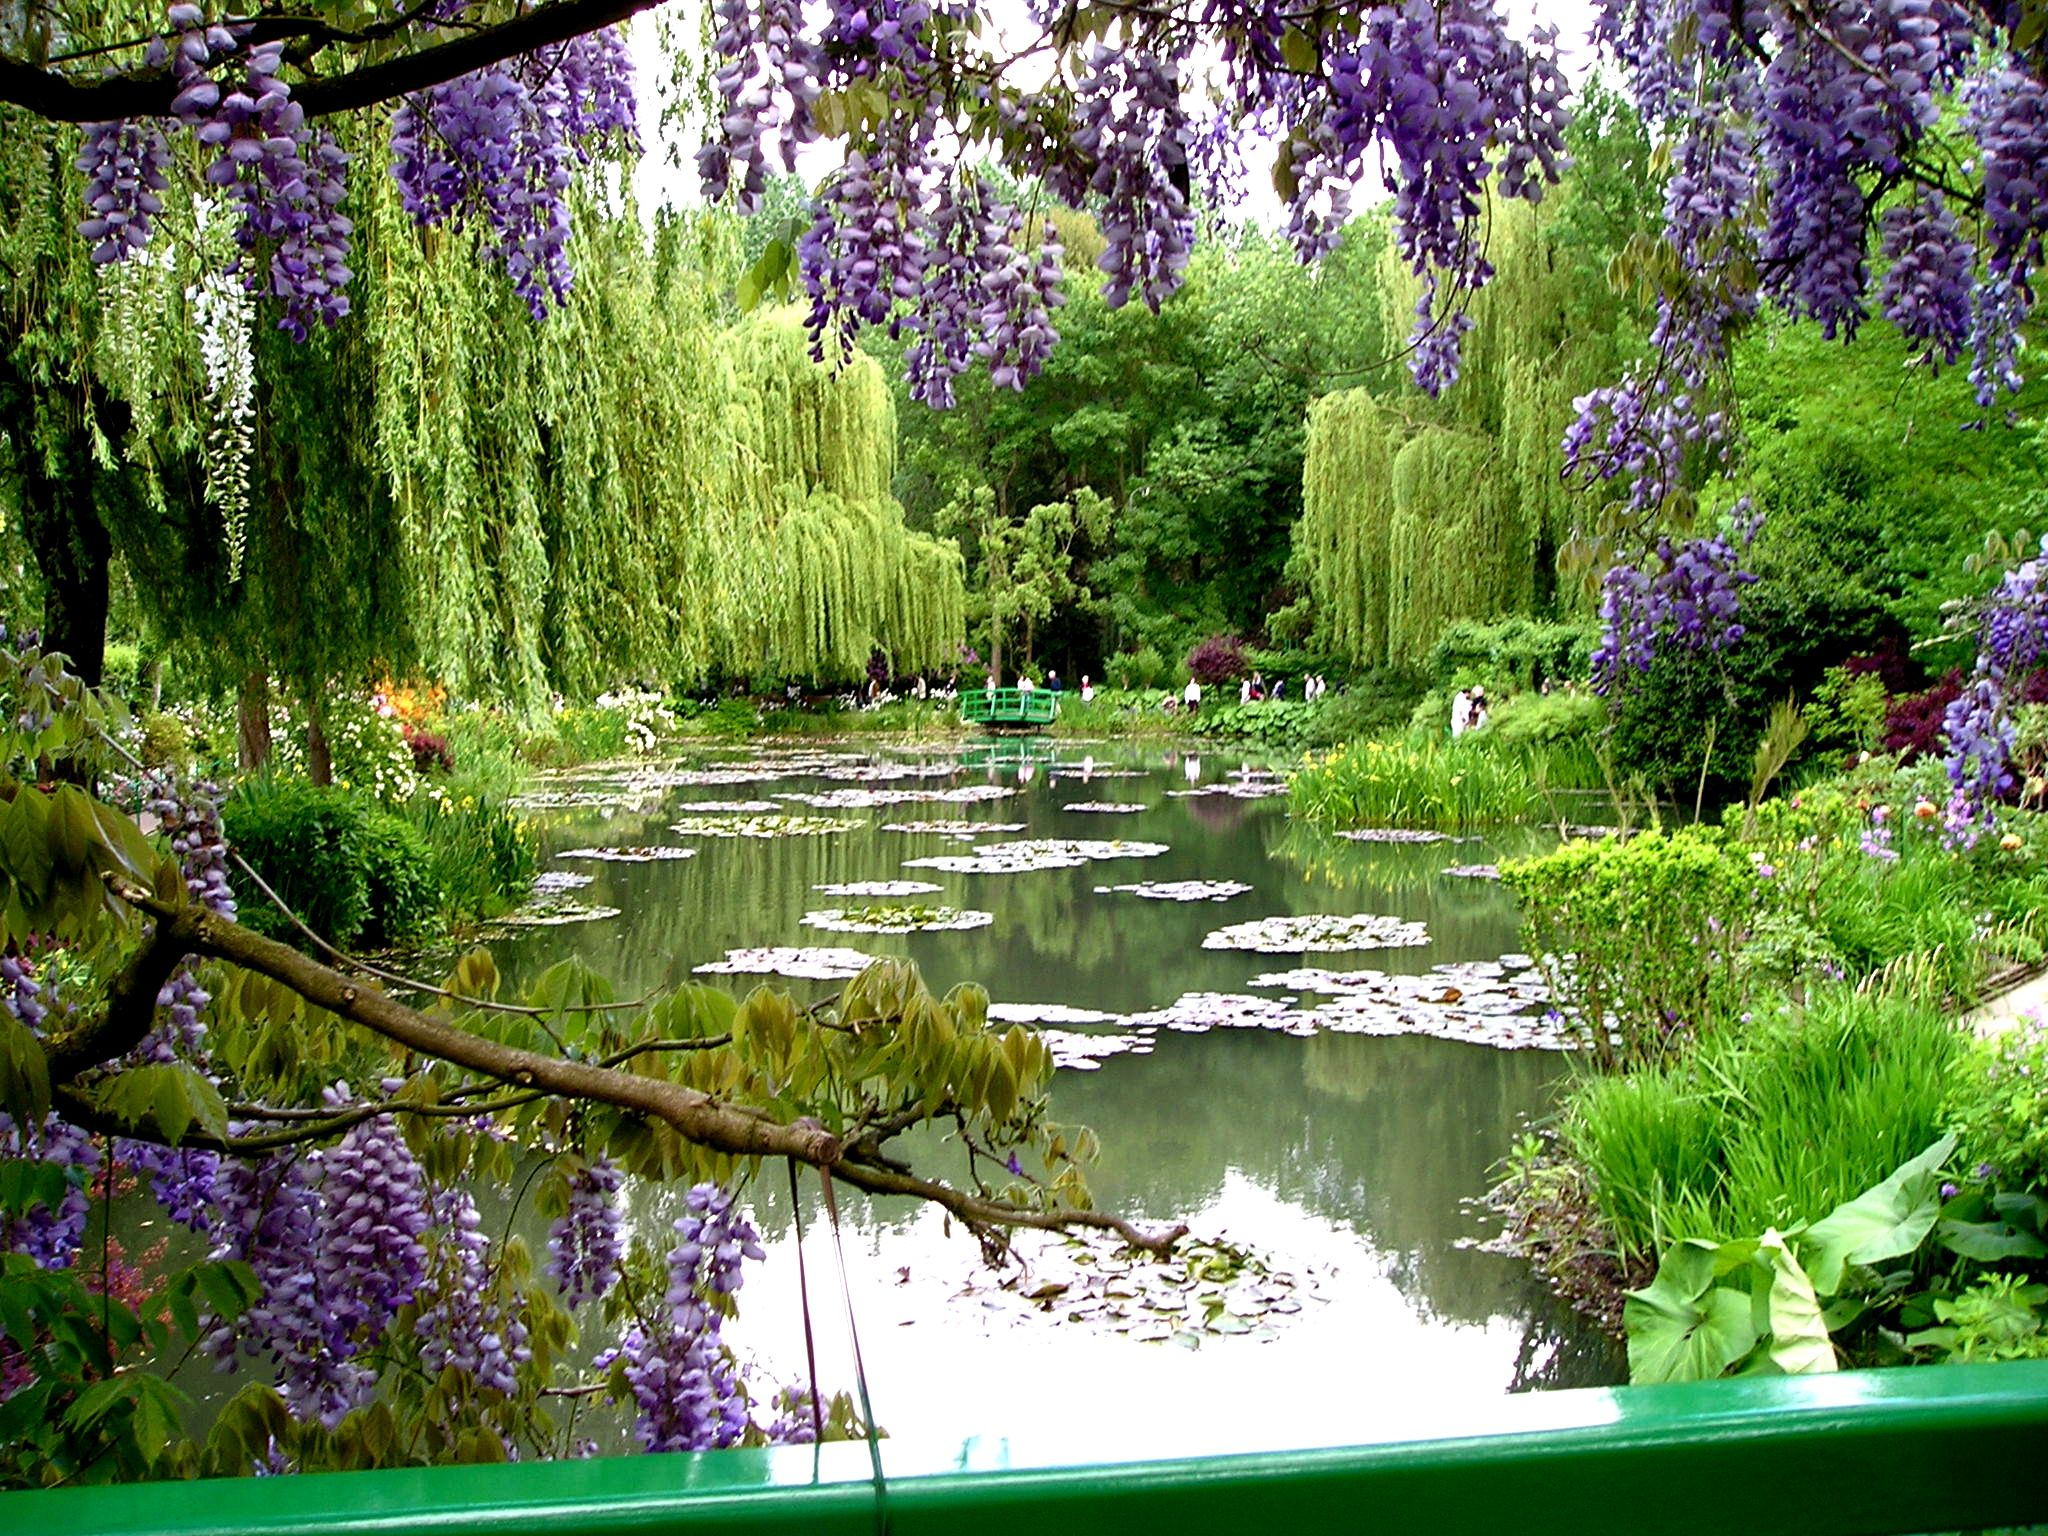 monet 39 s beautiful serene garden in giverny france jardins de giverny what an inspiration. Black Bedroom Furniture Sets. Home Design Ideas